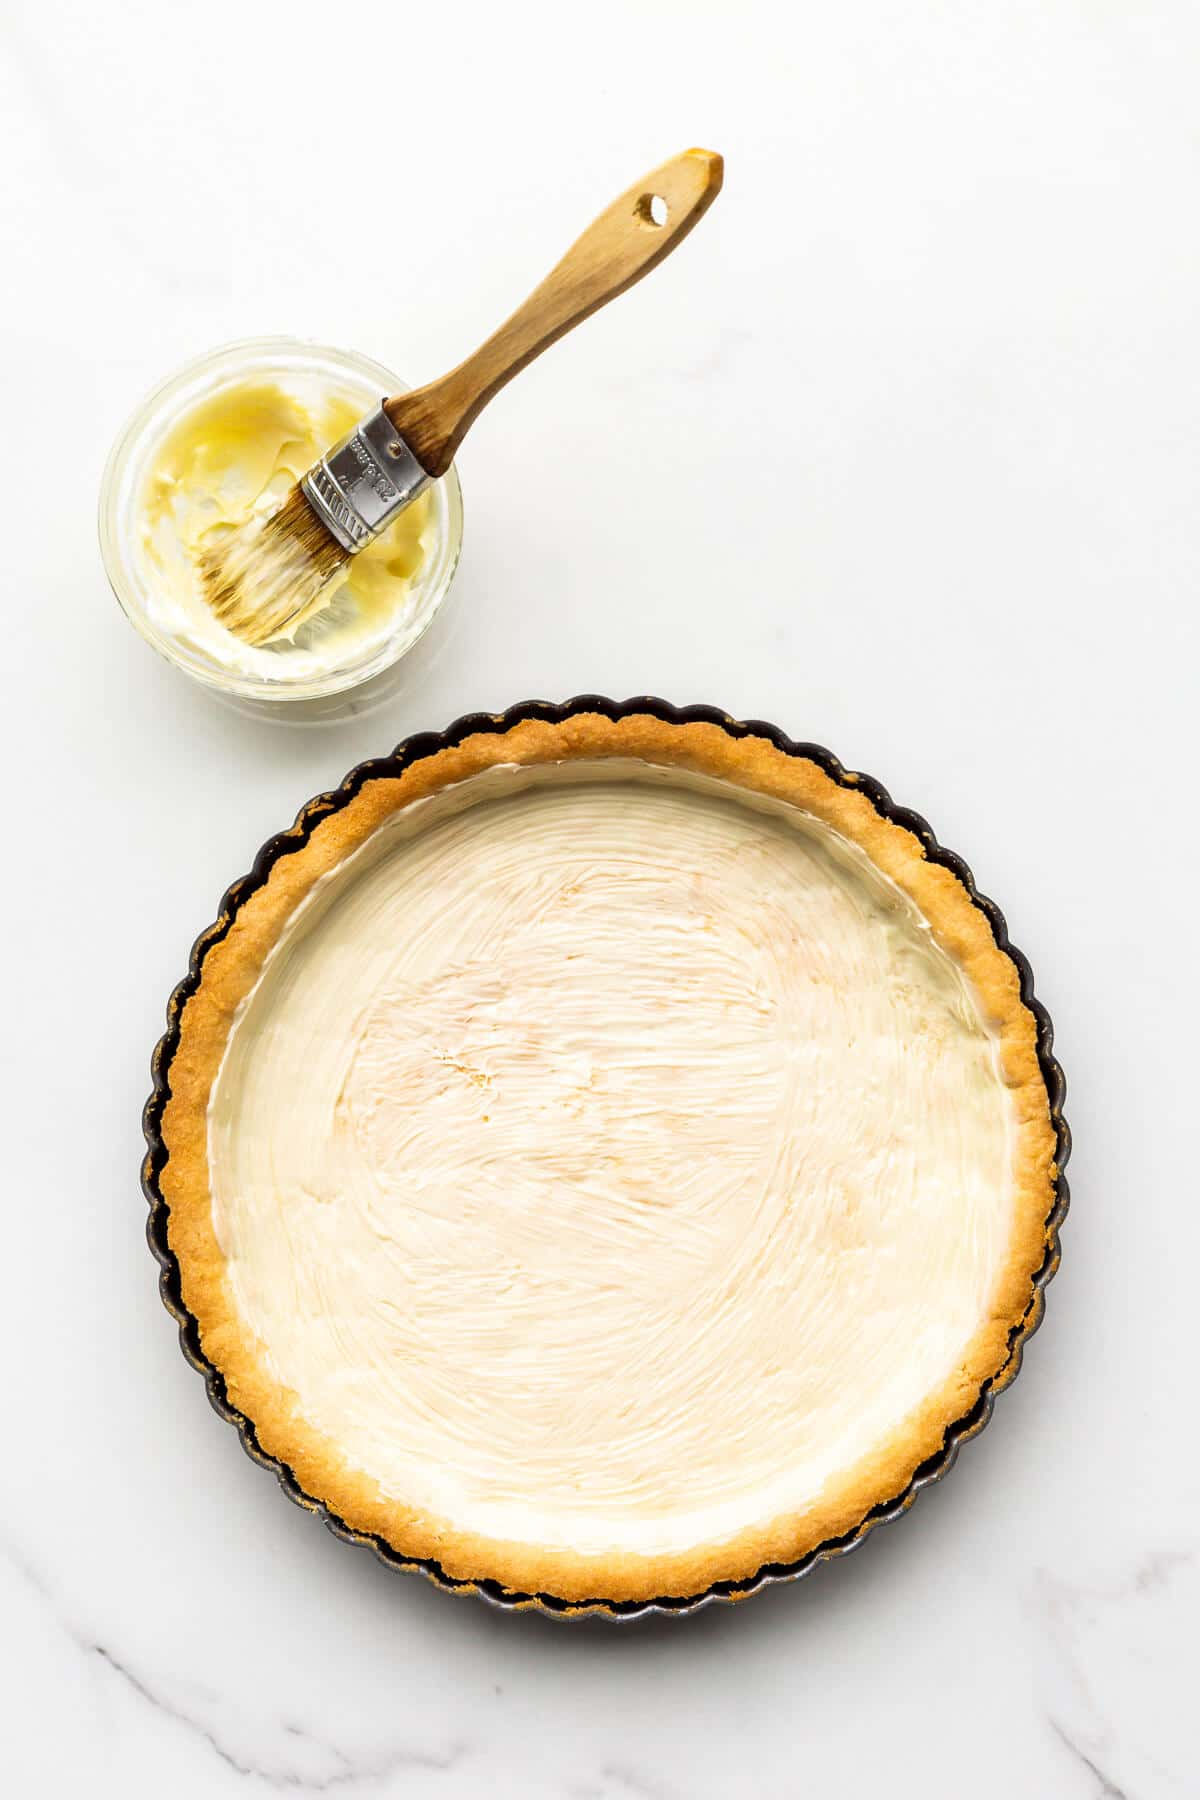 Brushing a baked tart shell with melted white chocolate to seal the pastry crust before filling.